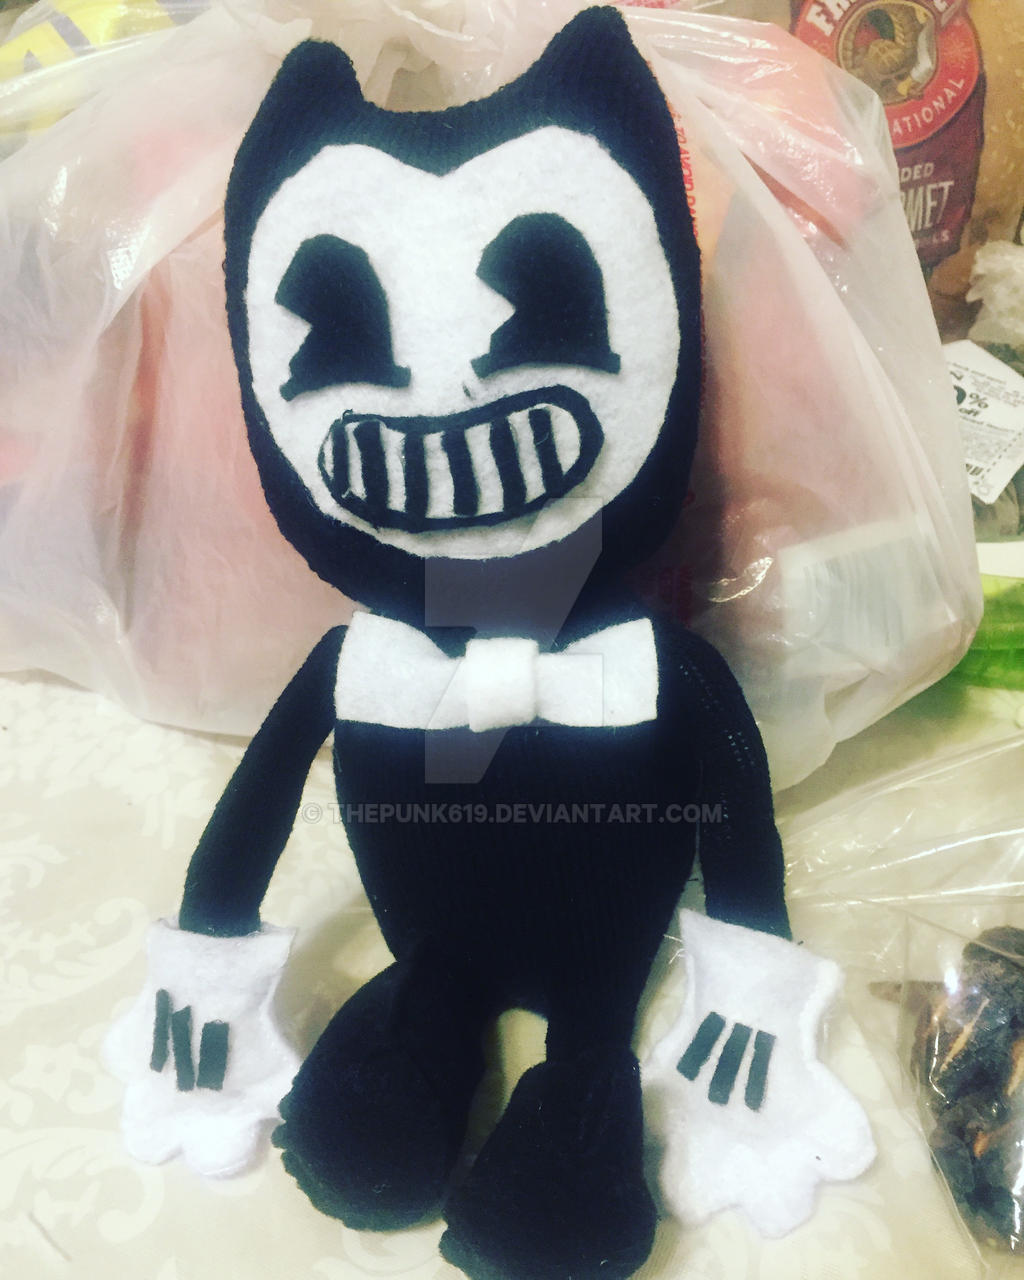 Bendy plush toy by thepunk619 on DeviantArt